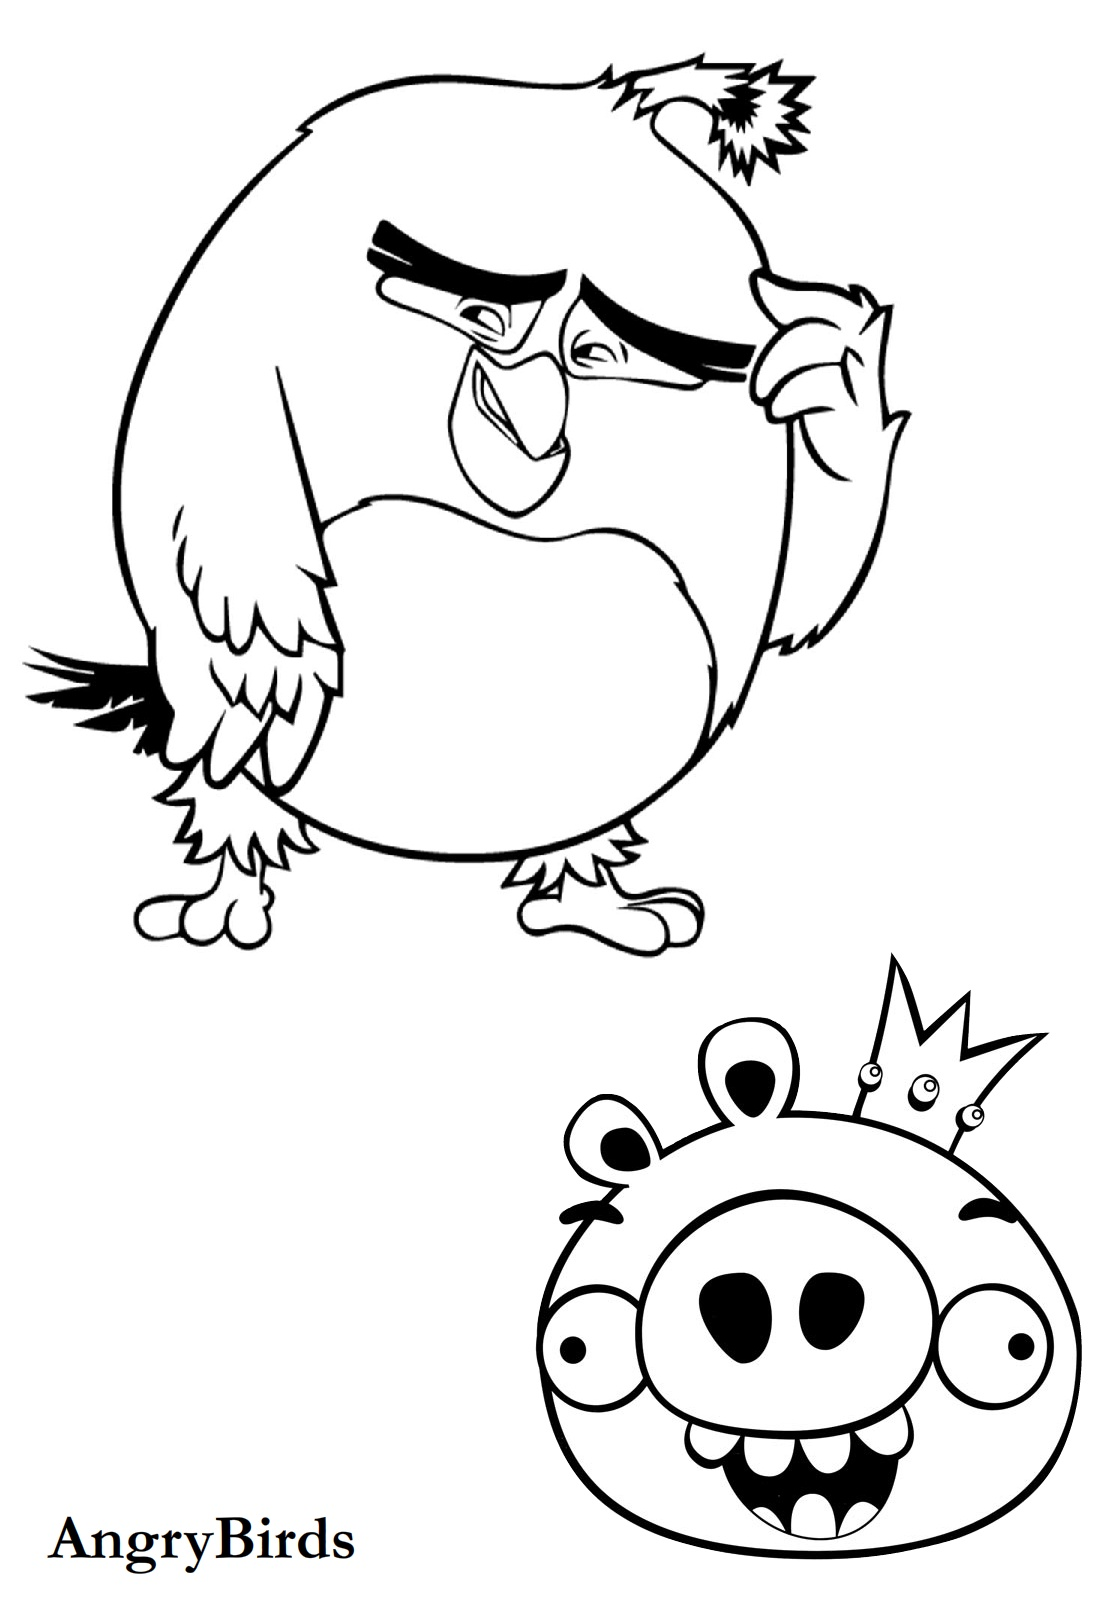 Angry Birds coloring page | Free Printable Coloring Pages | 1600x1100